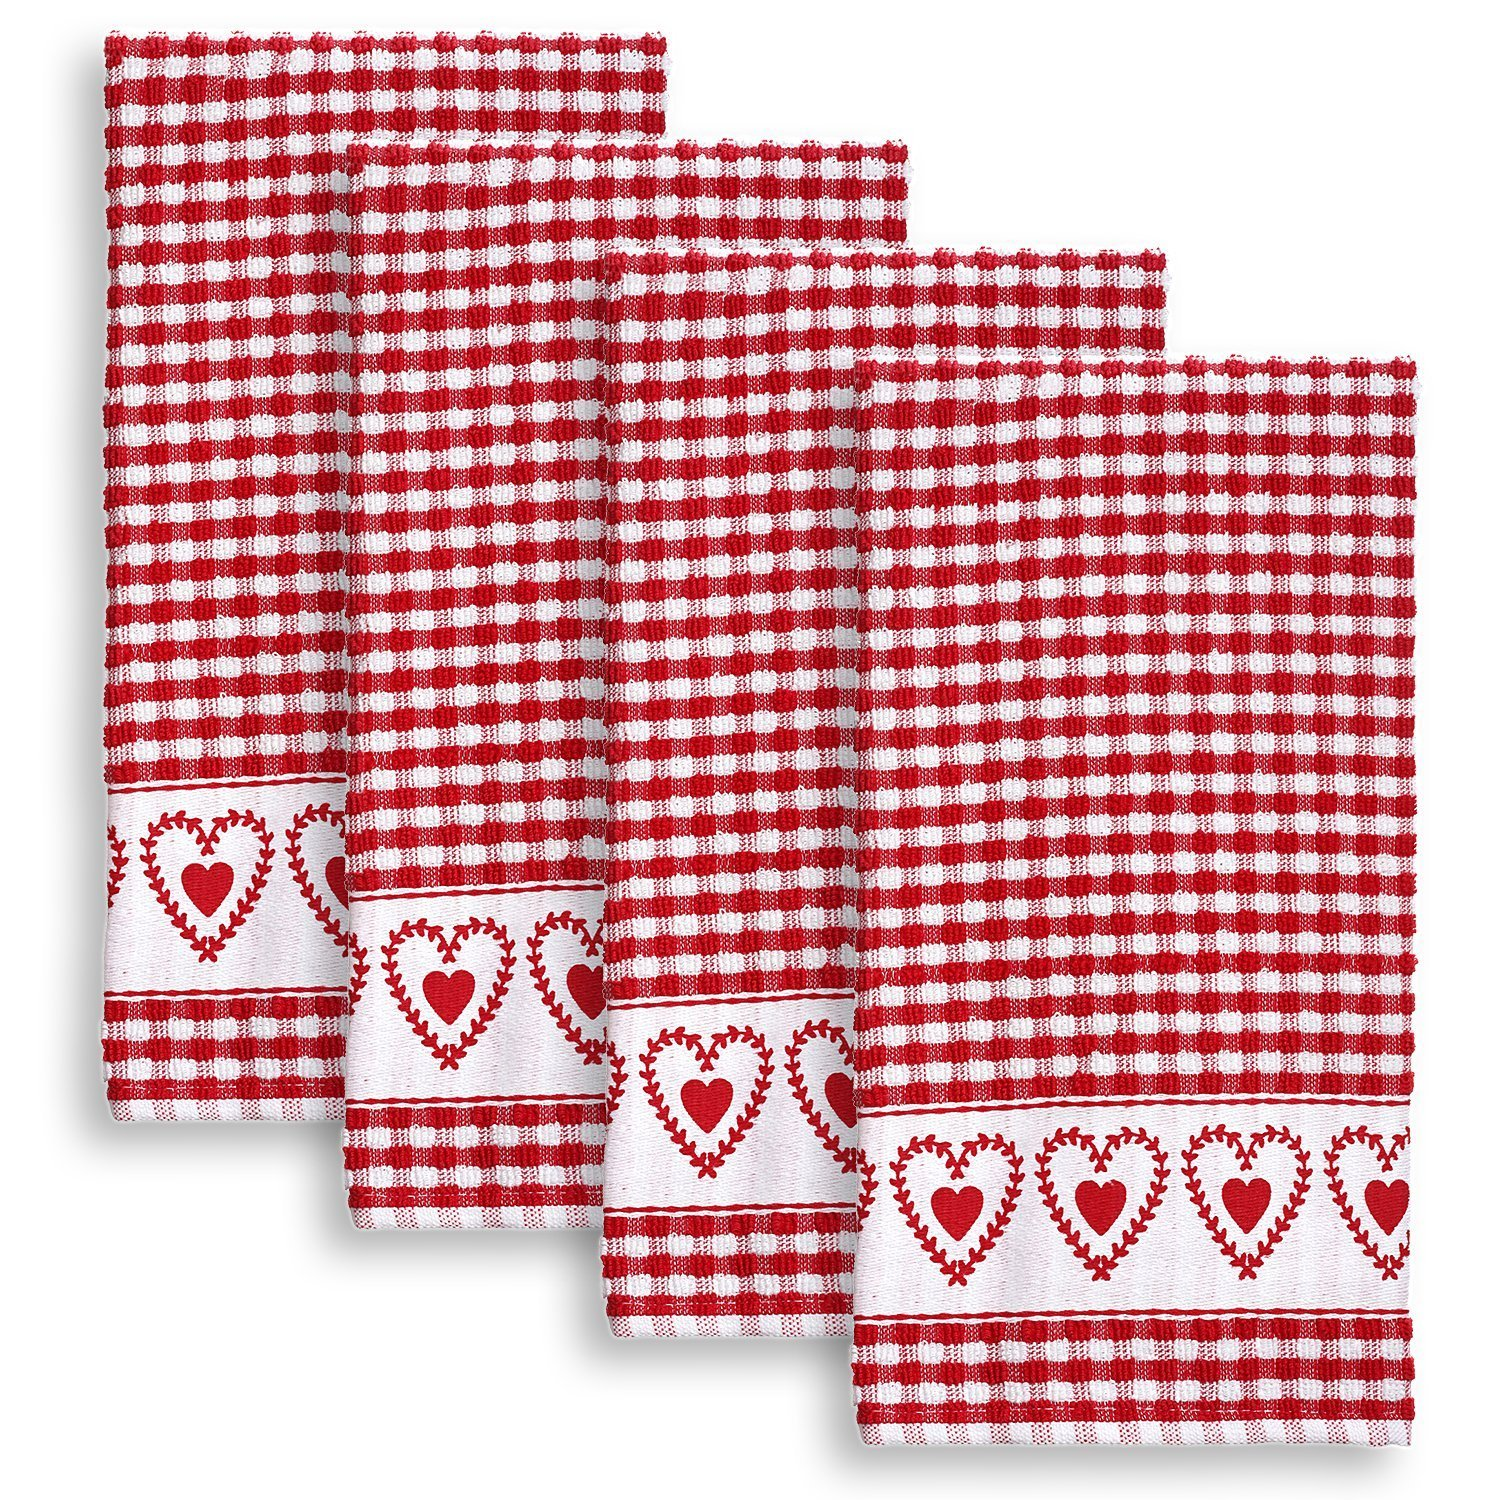 Cackleberry Home Joyful Hearts Terrycloth Kitchen Towels 100% Cotton, Set of 4 (Red)